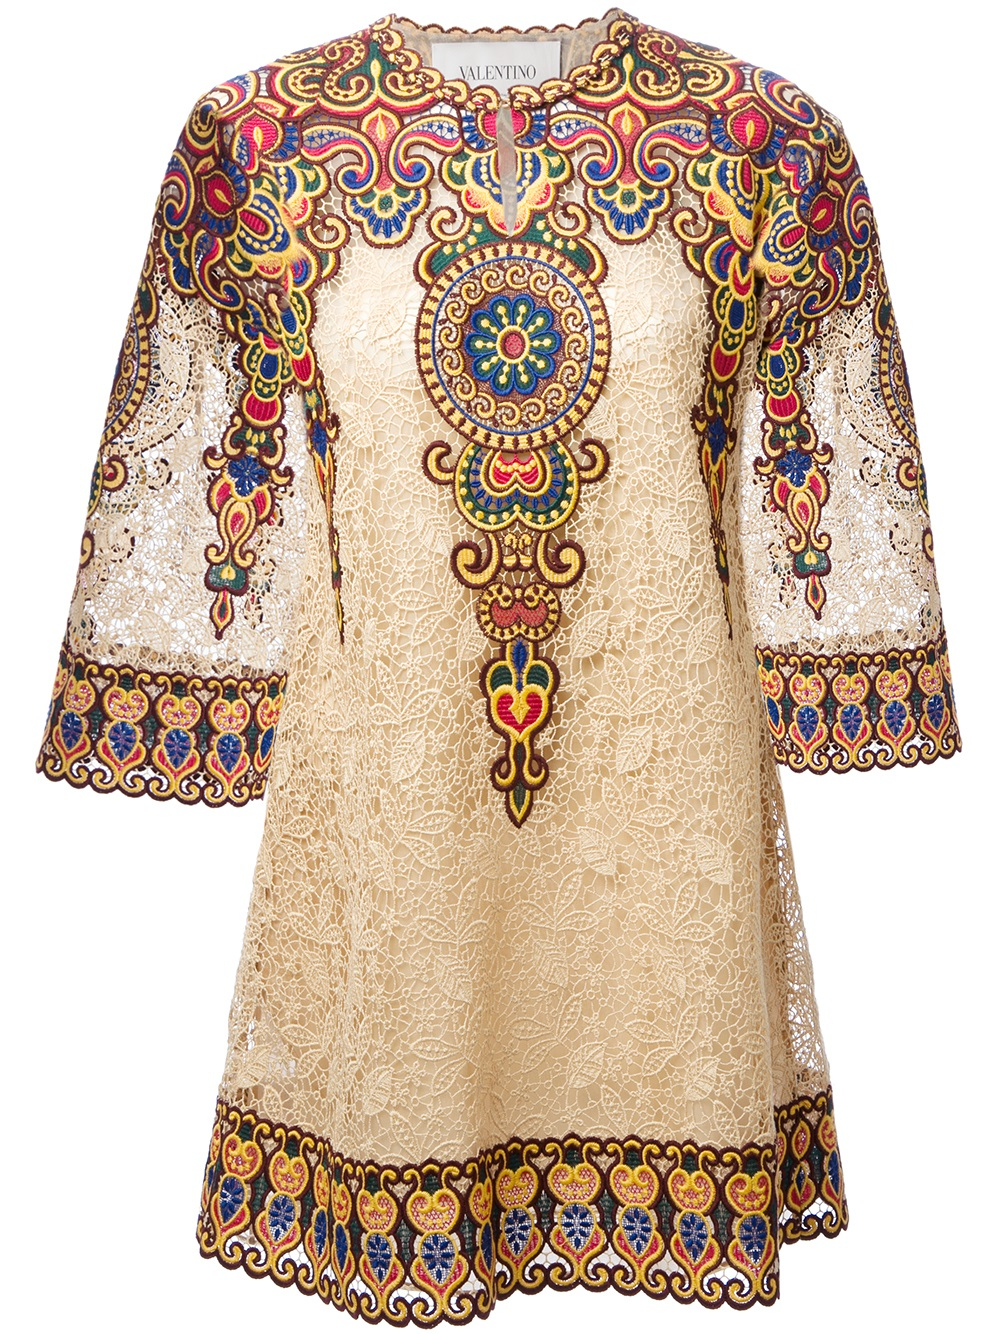 Valentino embroidered floral lace tunic dress in brown lyst